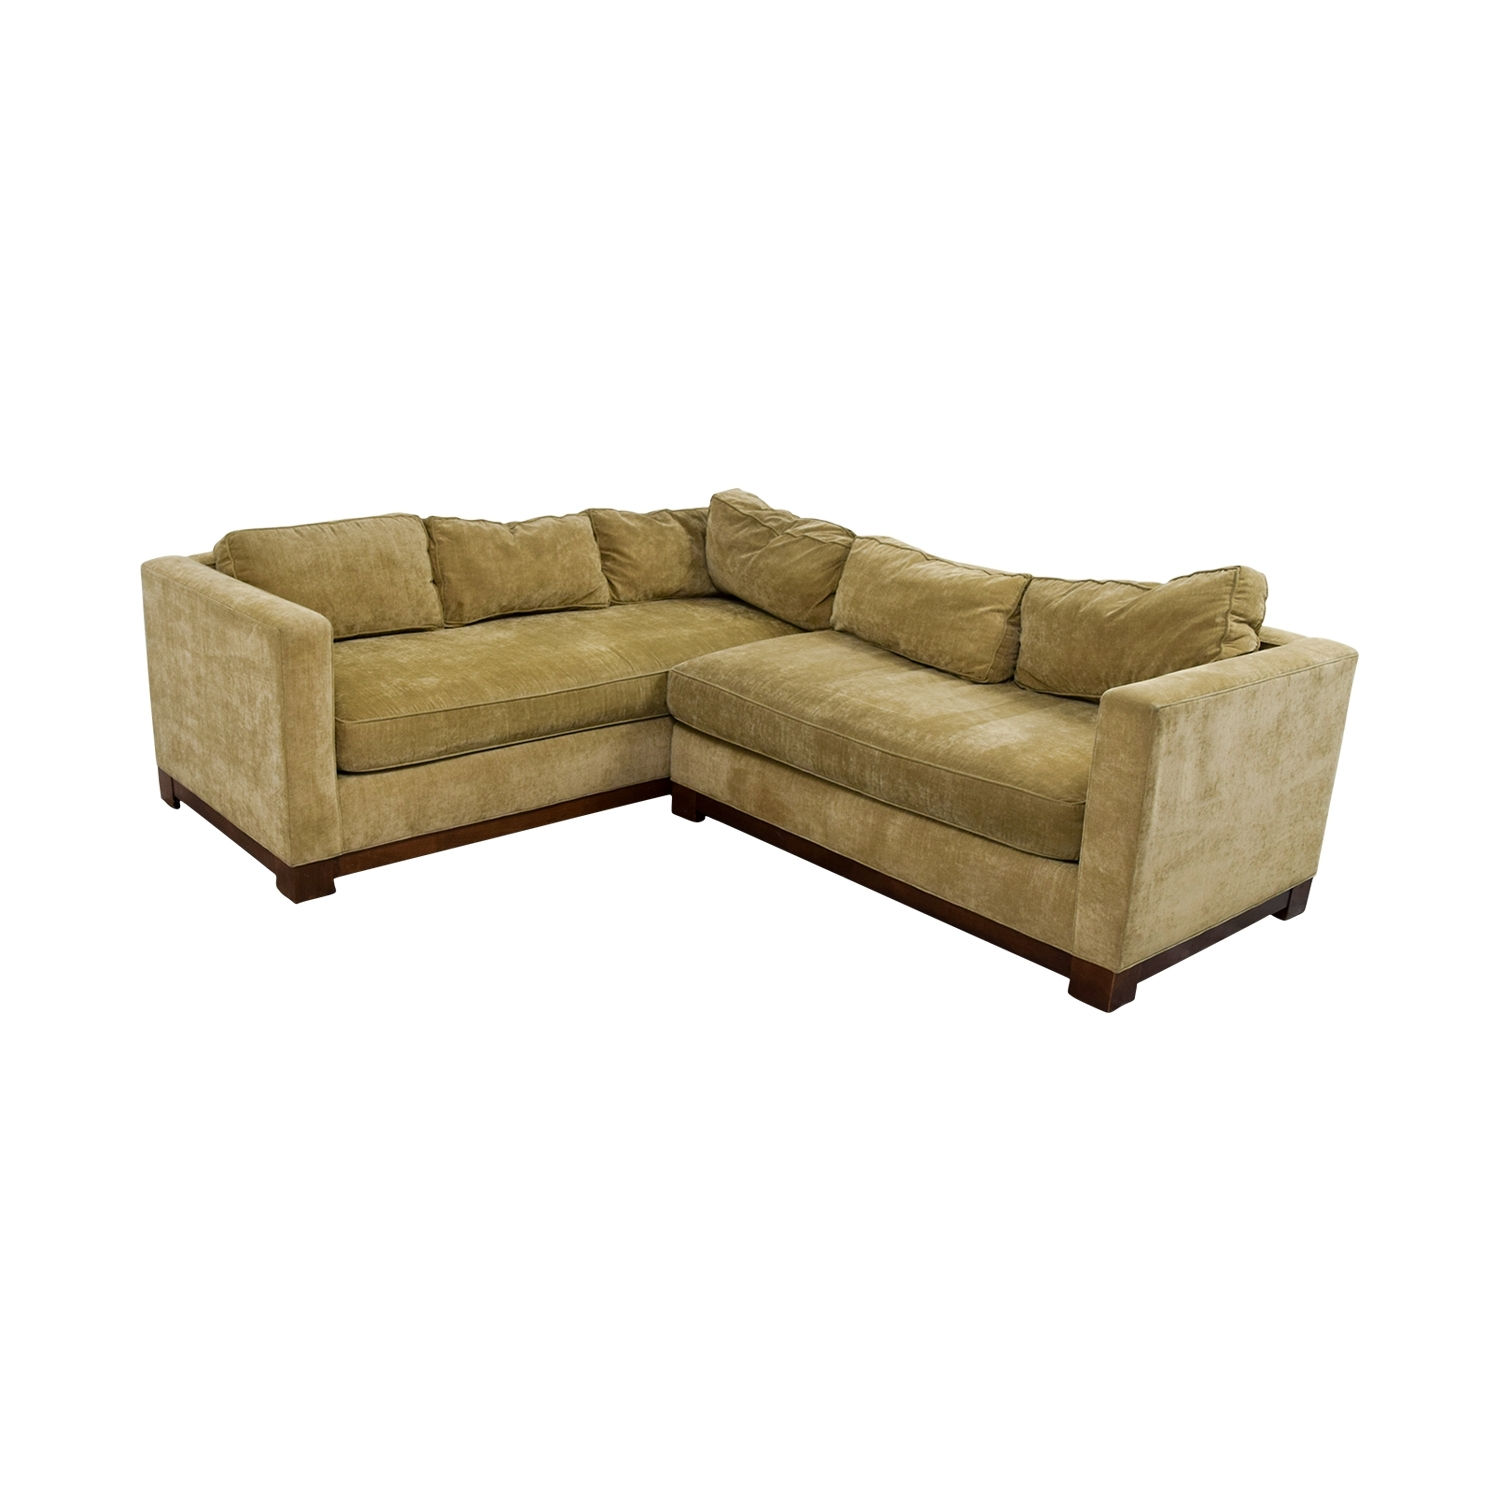 84% Off   Mitchell Gold + Bob Williams Mitchell Gold + Bob Williams Inside Gold Sectional Sofas (Photo 10 of 10)